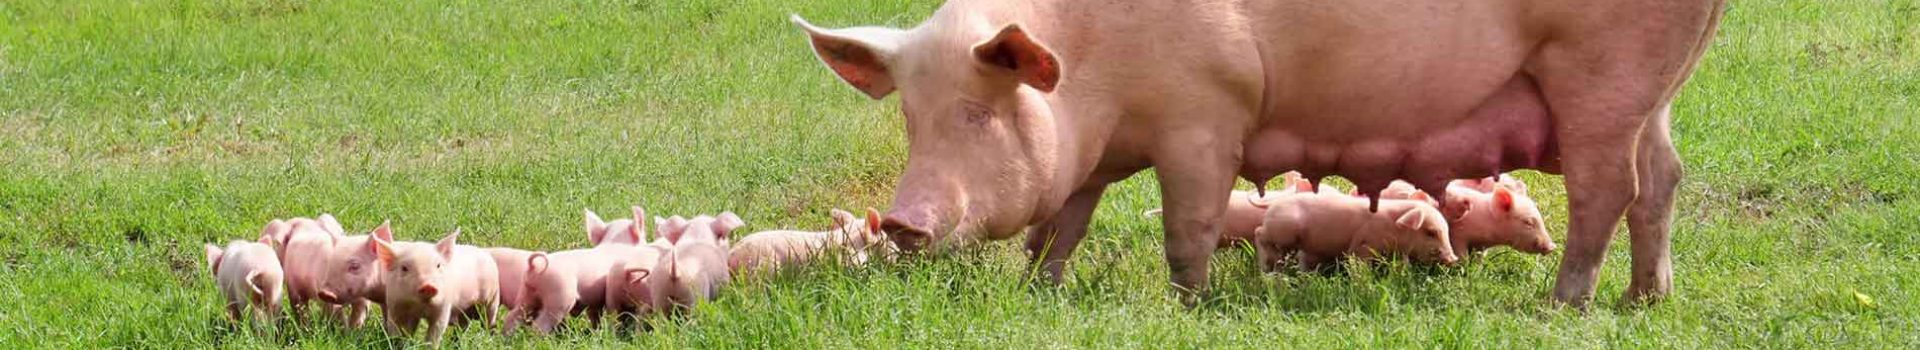 A female pig with her piglets on a farm